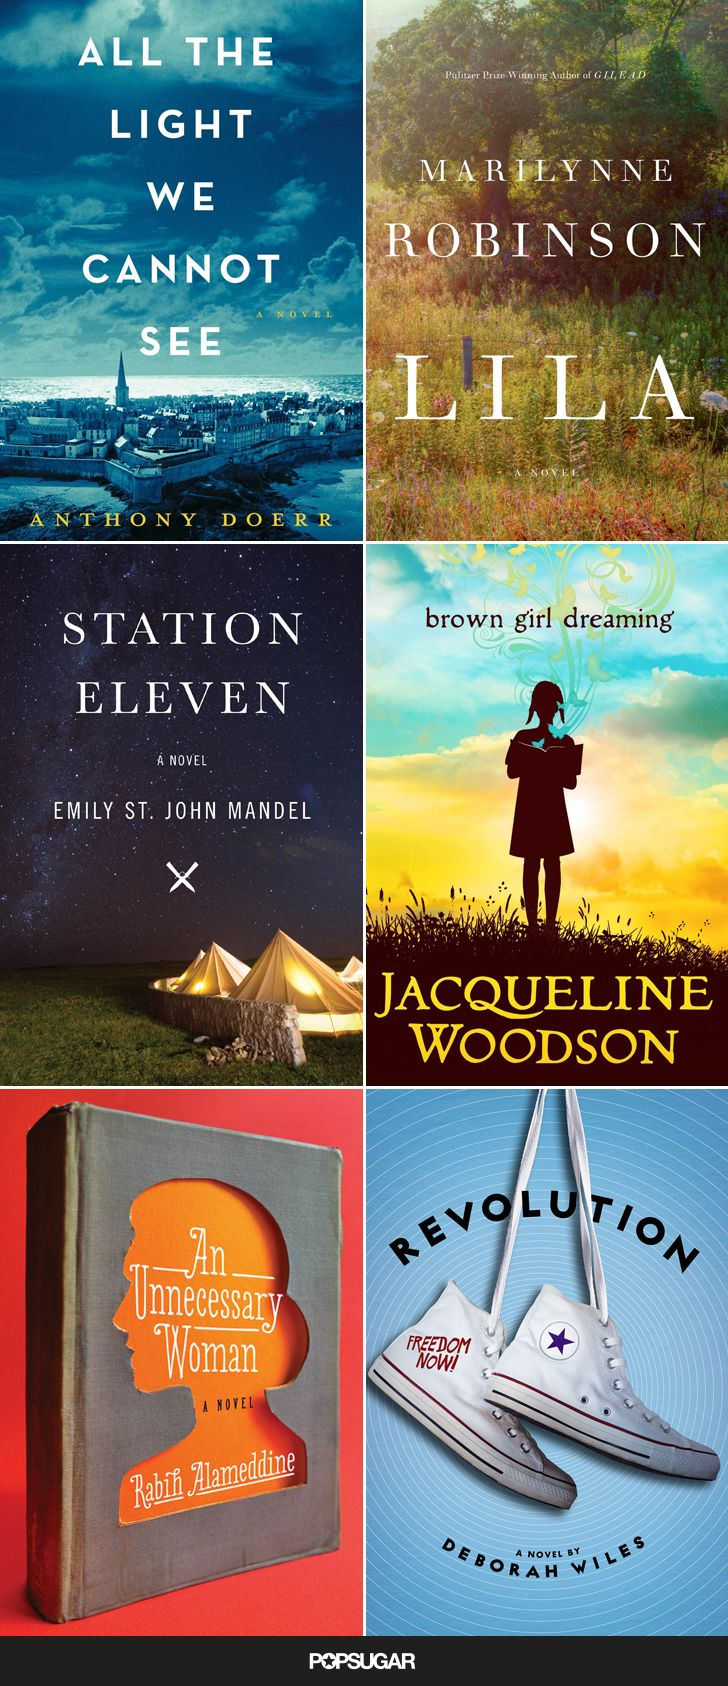 Have you read the National Book Award finalists?